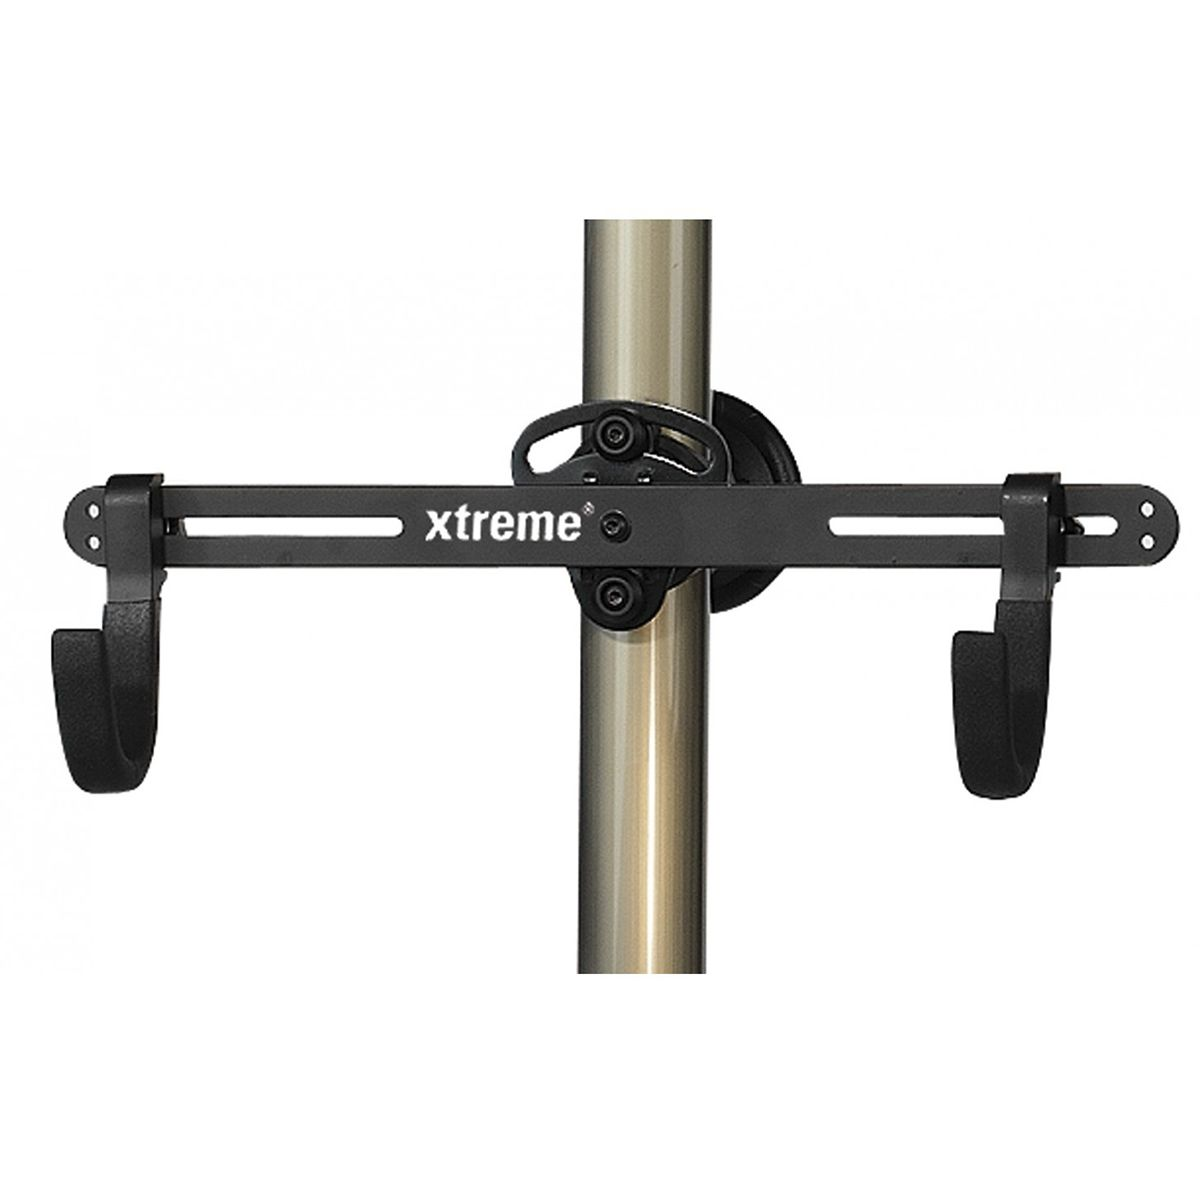 Xtreme Replacement holder for Storage BD 340 Multiflex stand - bottom -   Stands